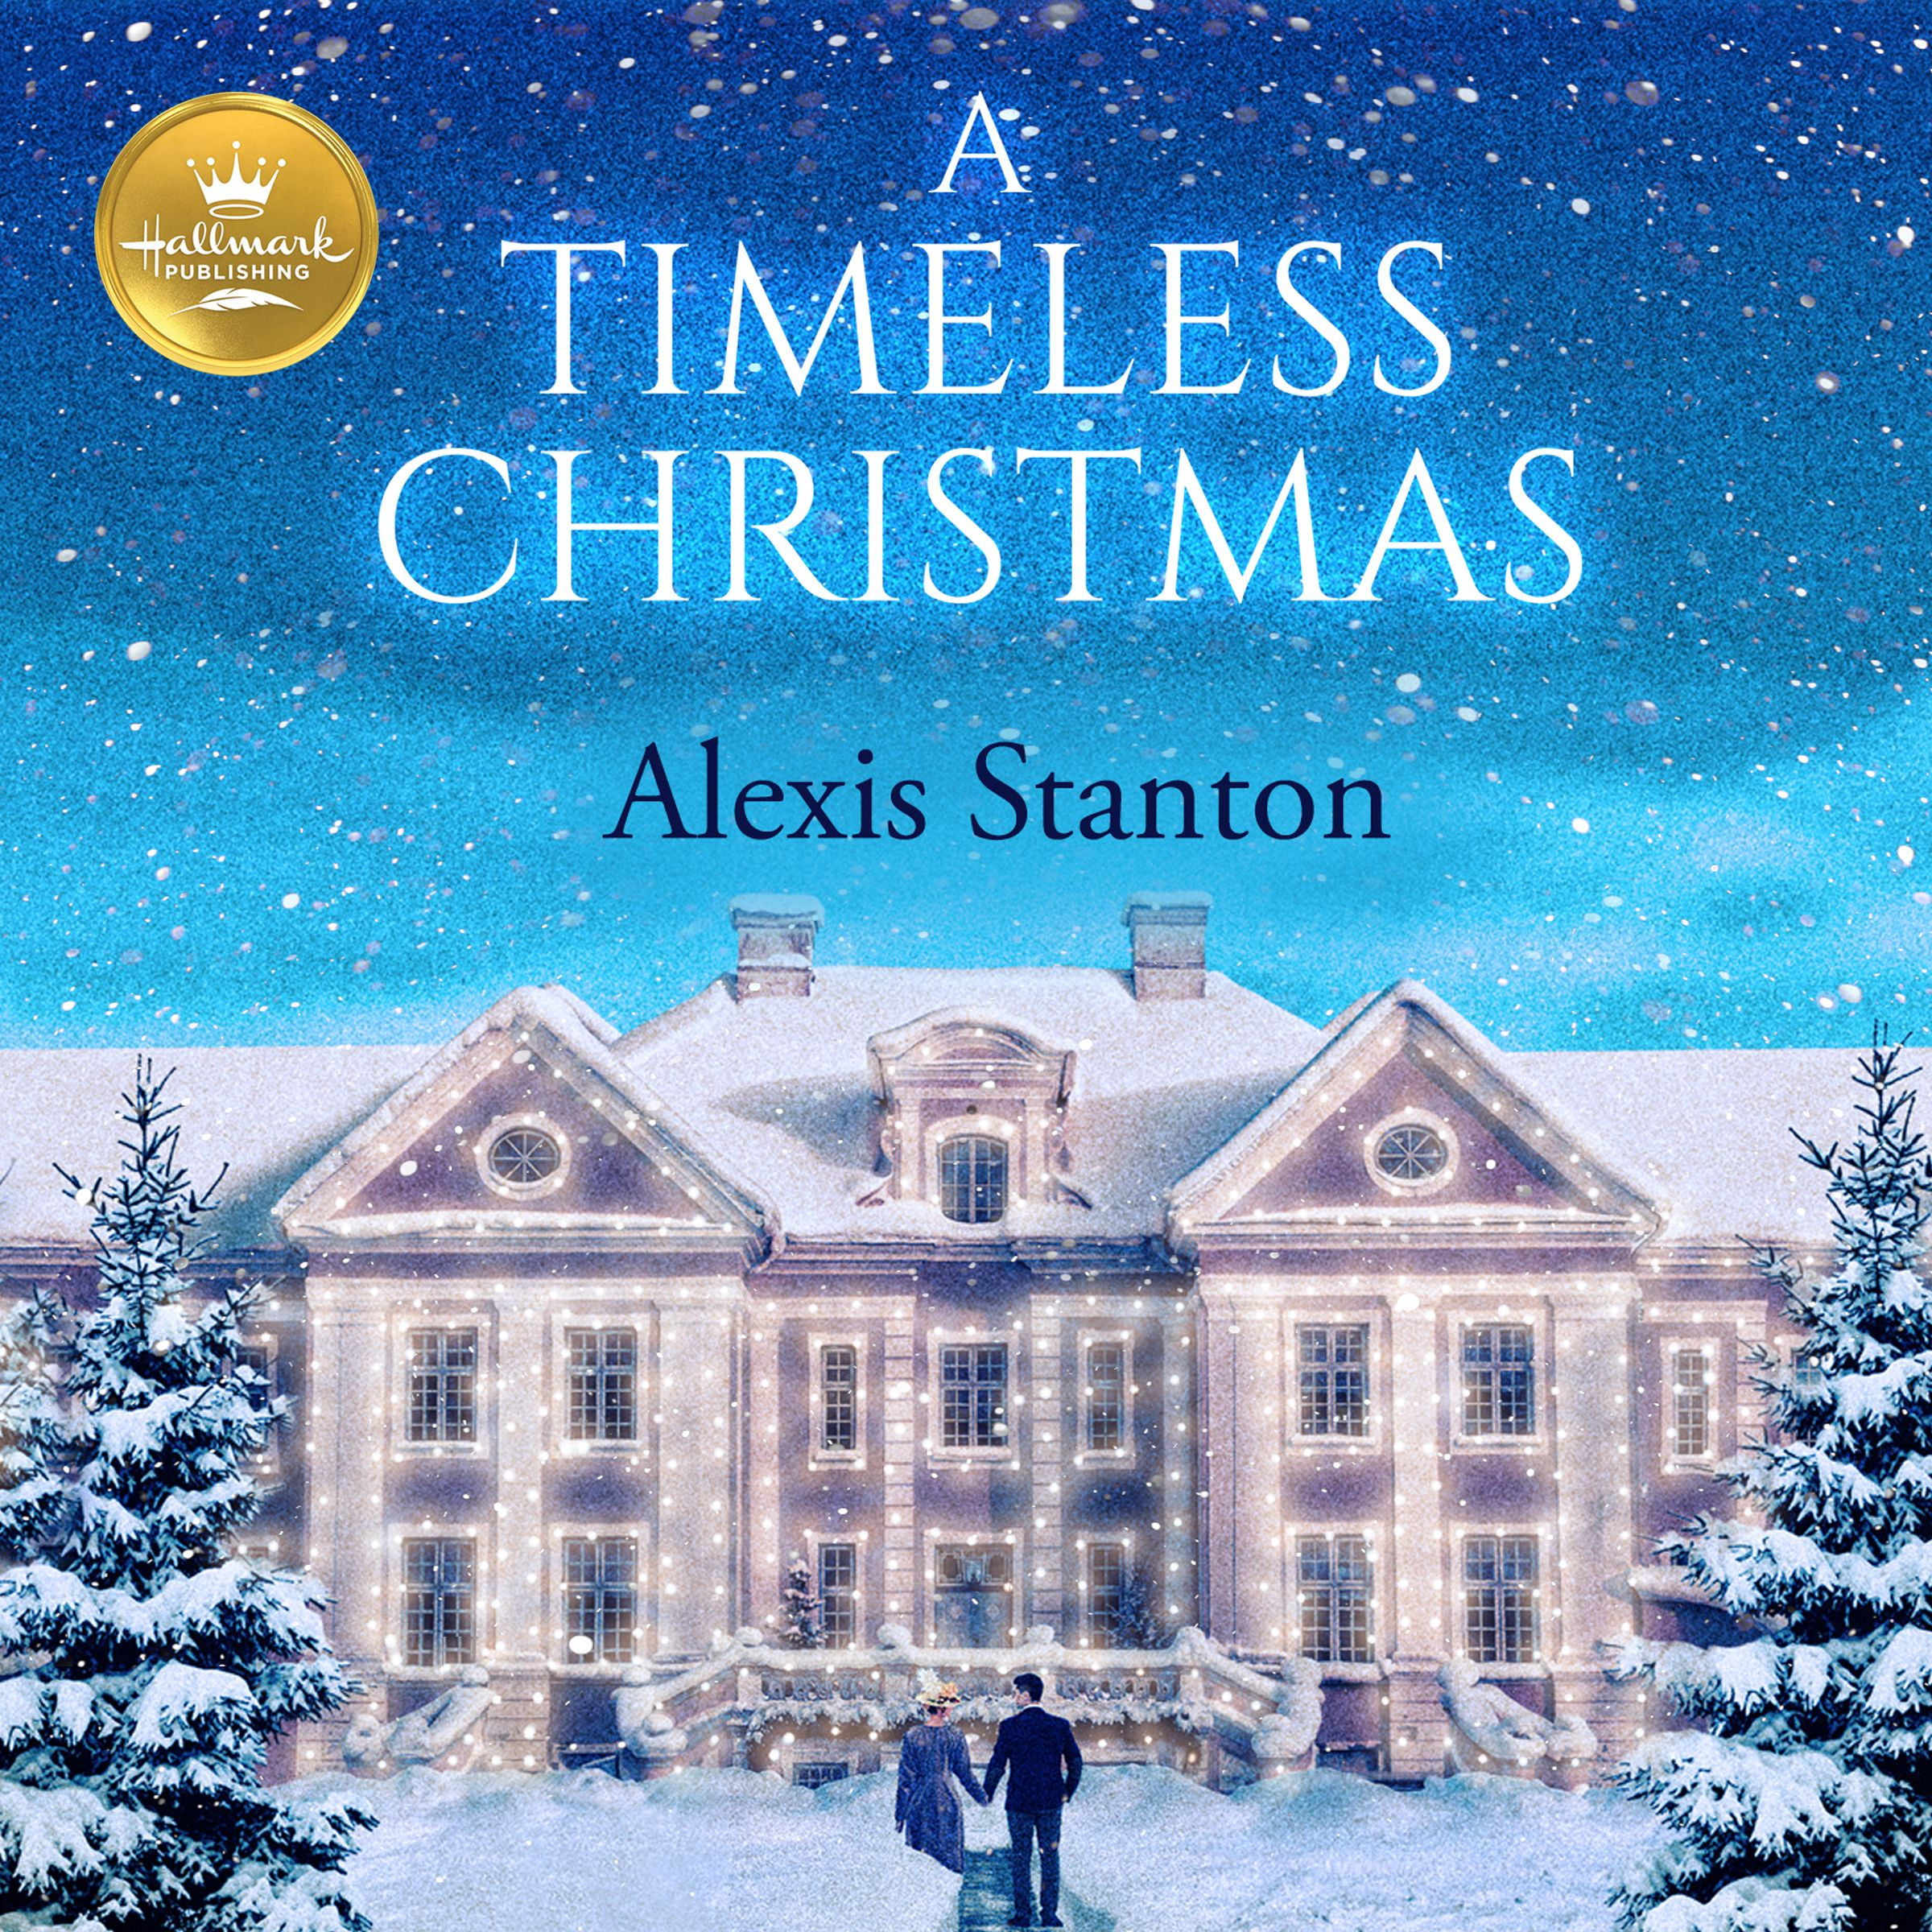 A Timeless Christmas by Alexis Stanton Free books